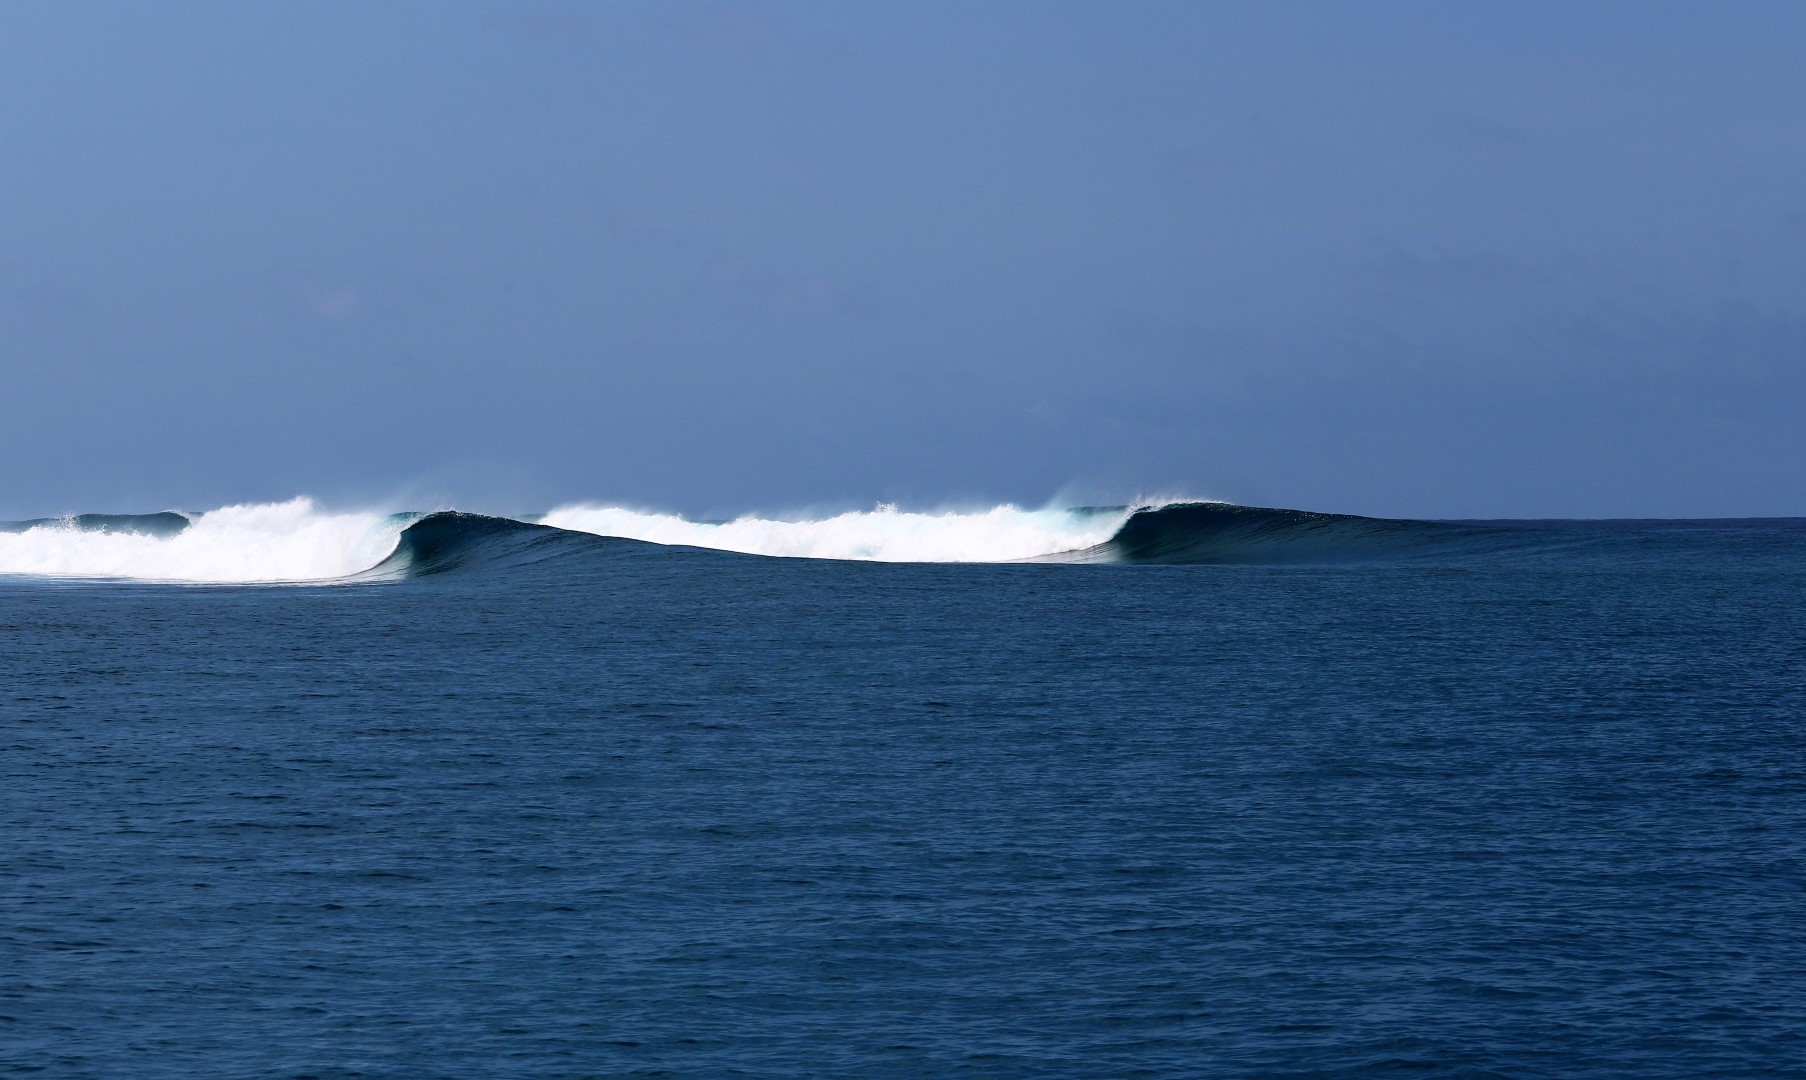 You could score the wave of your life in the Maldives. – Nathu